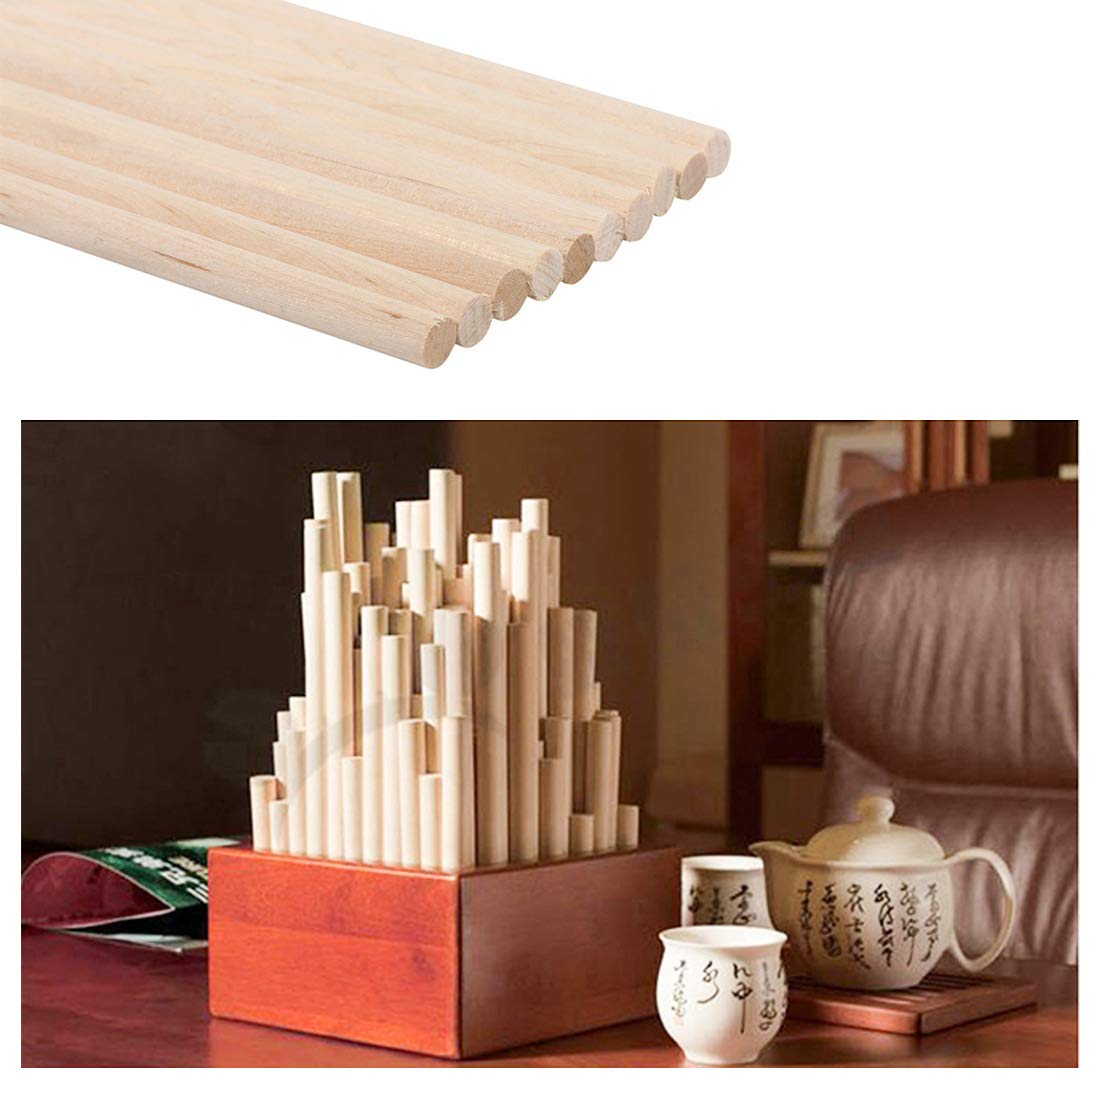 Bamboo Dowel Rods 100 Pcs Woodcraft Sticks for Craft Projects Making Building Woodcraft Kids Educational Toys Unfinished Natural Wood 5mm